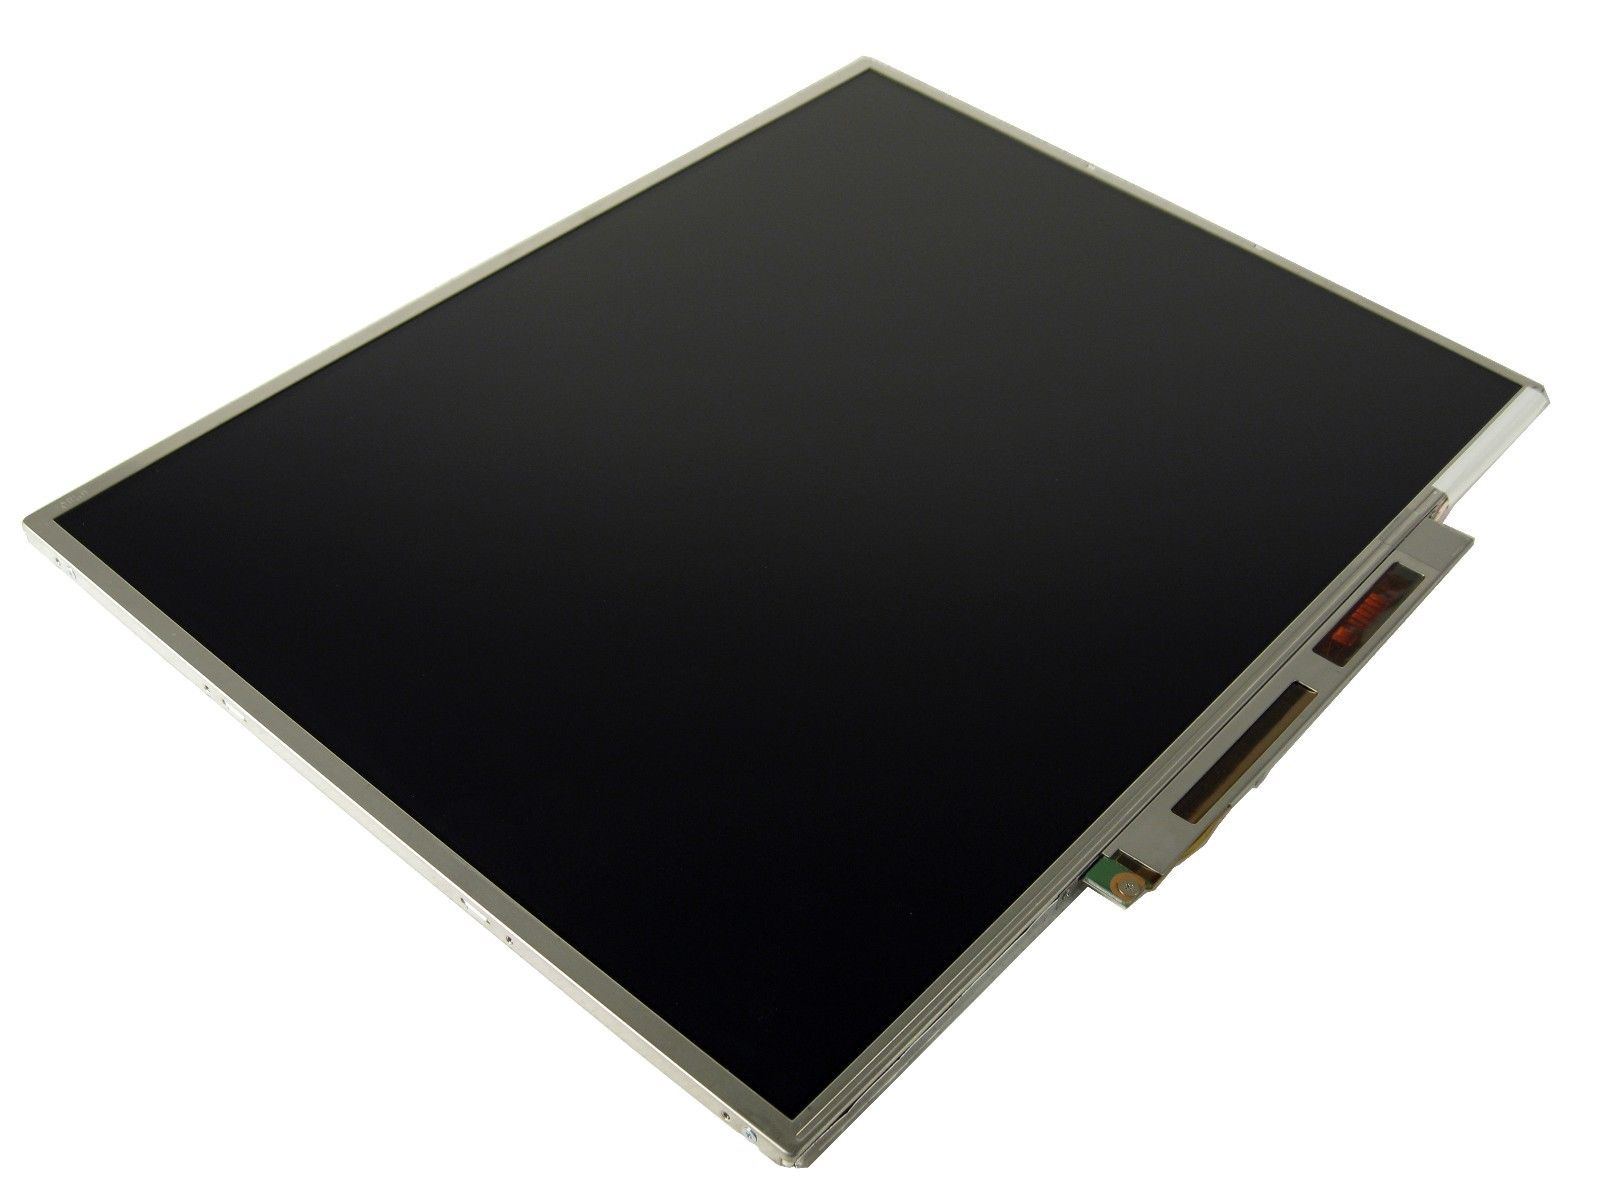 "Dell JC751 Latitude D610 14.1"" XGA TFT LCD Panel B141XG09"